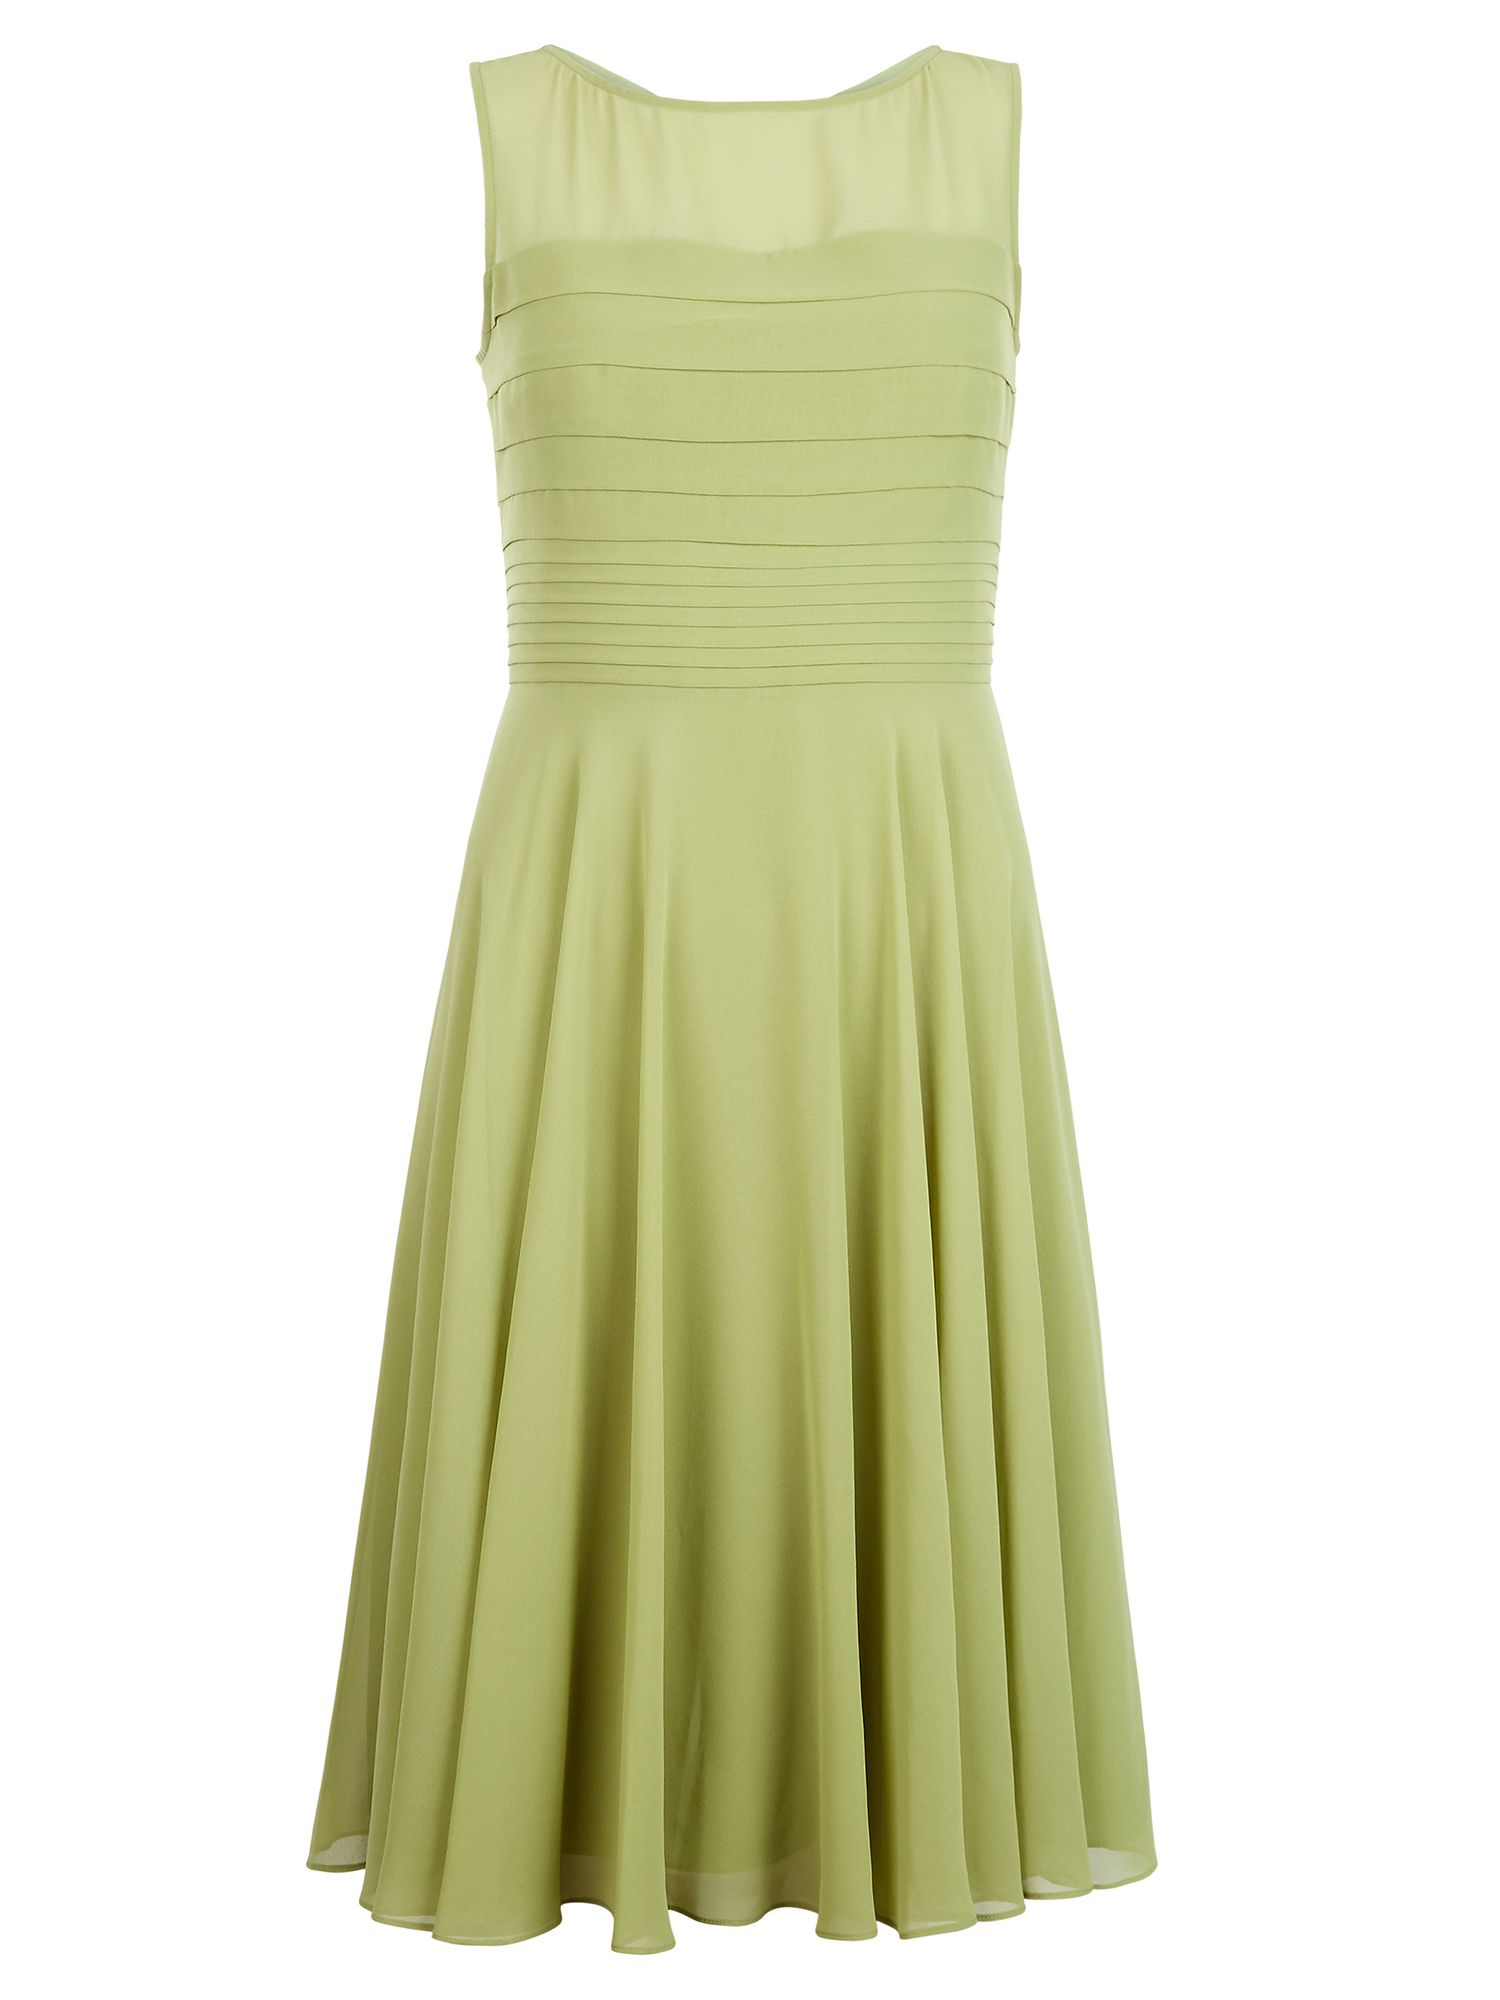 Hobbs Adriana Dress, Green